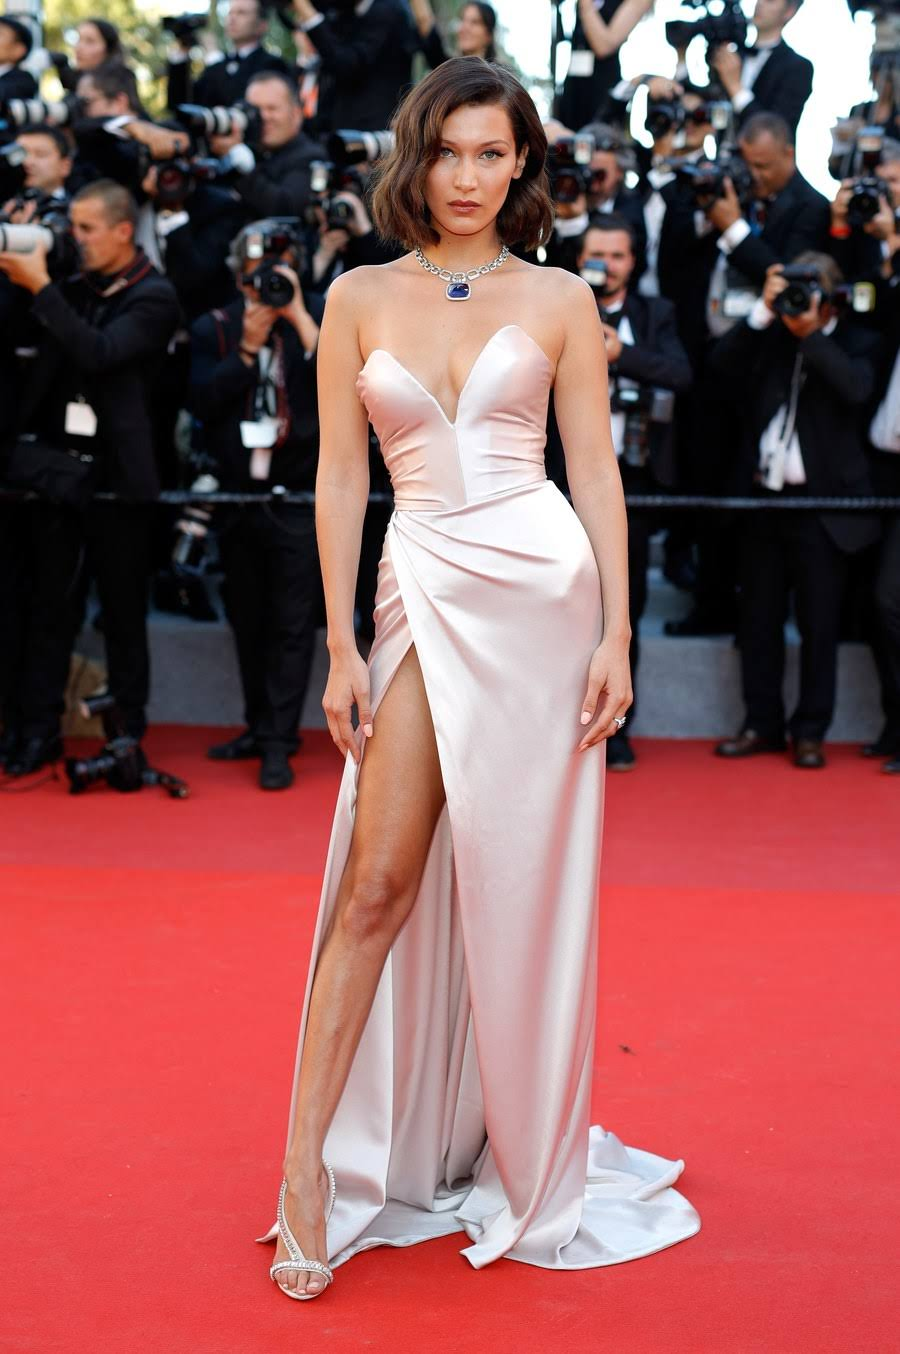 BELLA HADID SUFFERS TERRIBLE WARDROBE MALFUNCTION DURING CANNES FILM FESTIVAL 2017